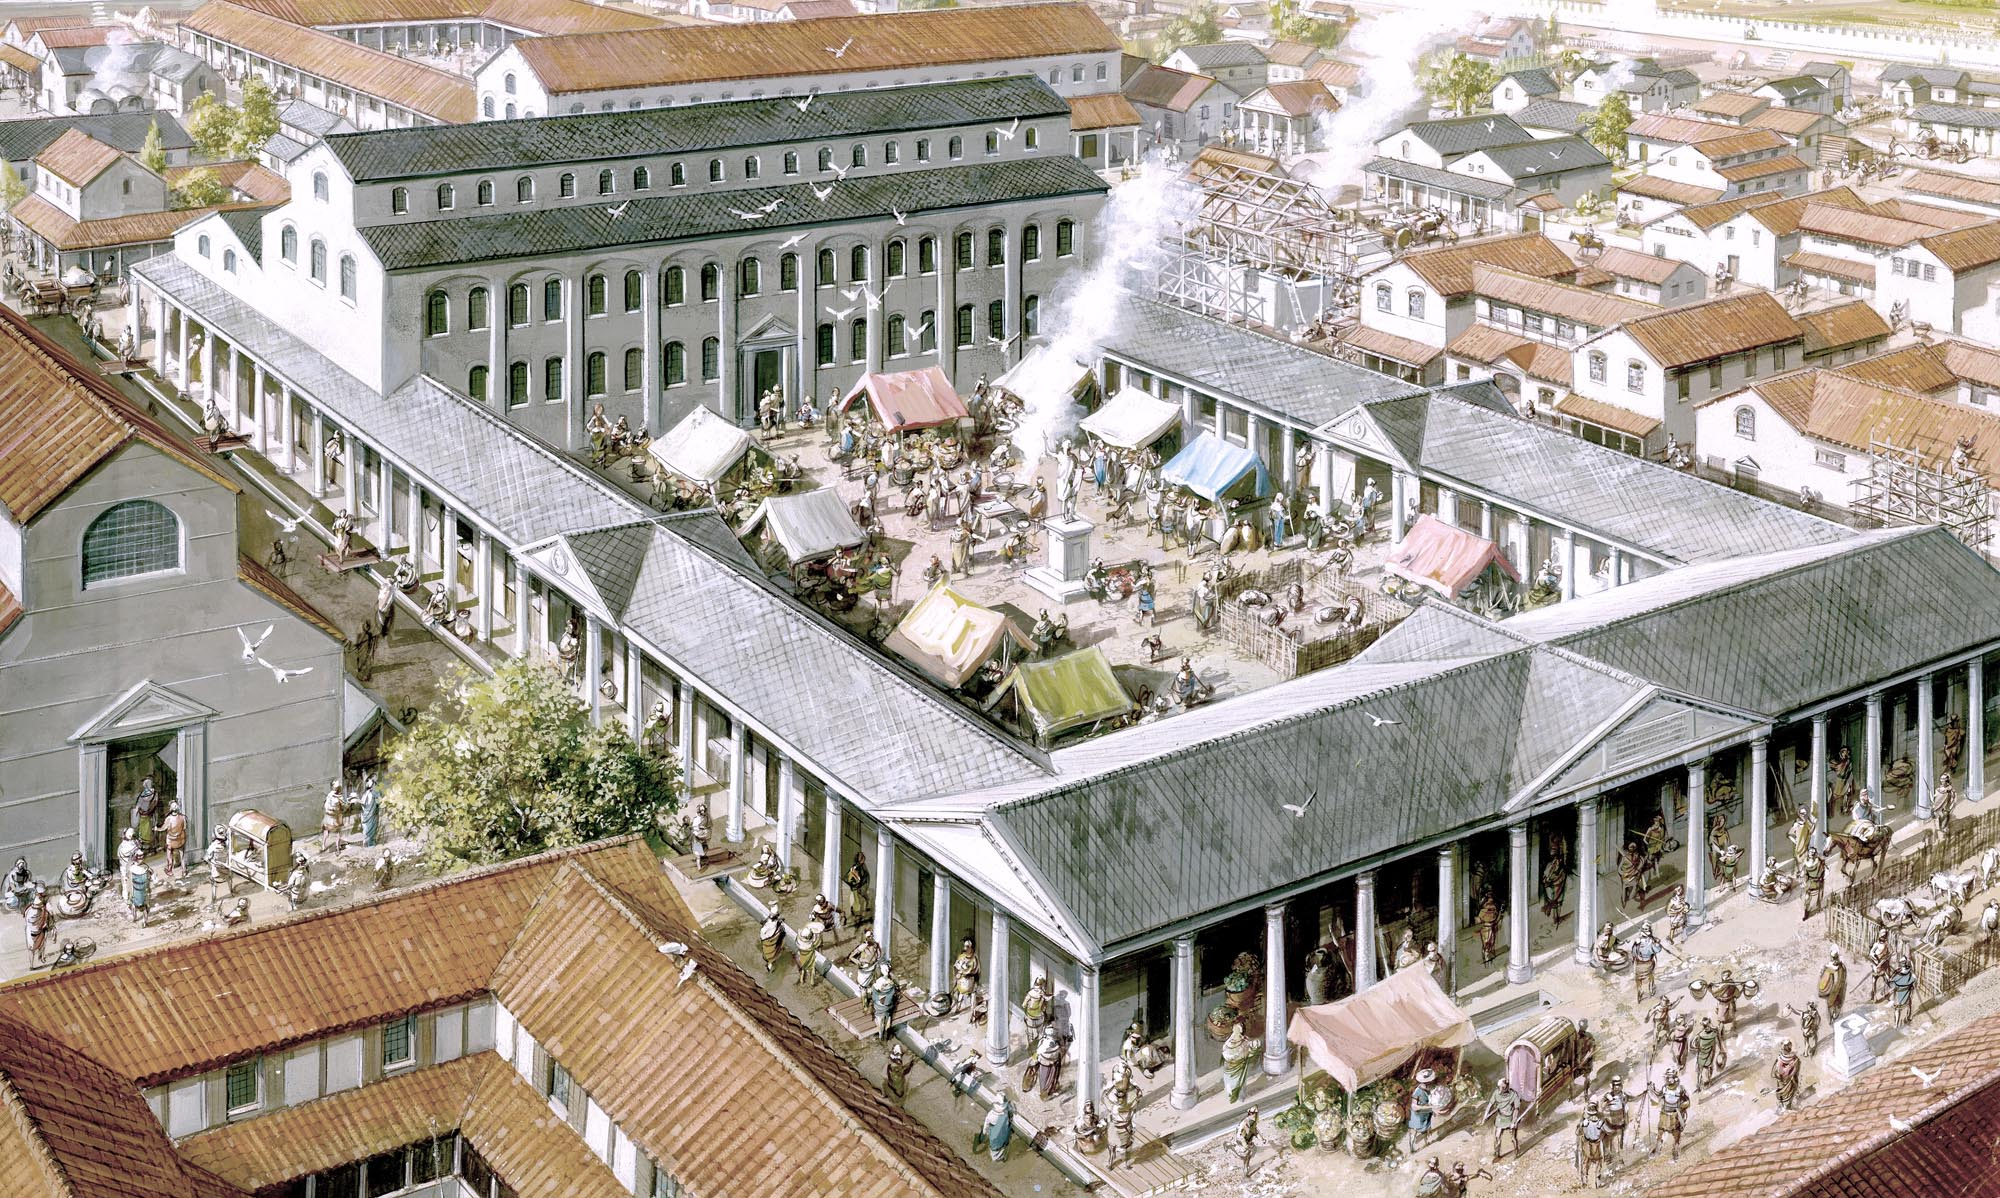 The Roman Forum and Basilica as they may have looked from the south-west during the early 3rd century CE - Mike Codd / Leicester Arts and Museums Service